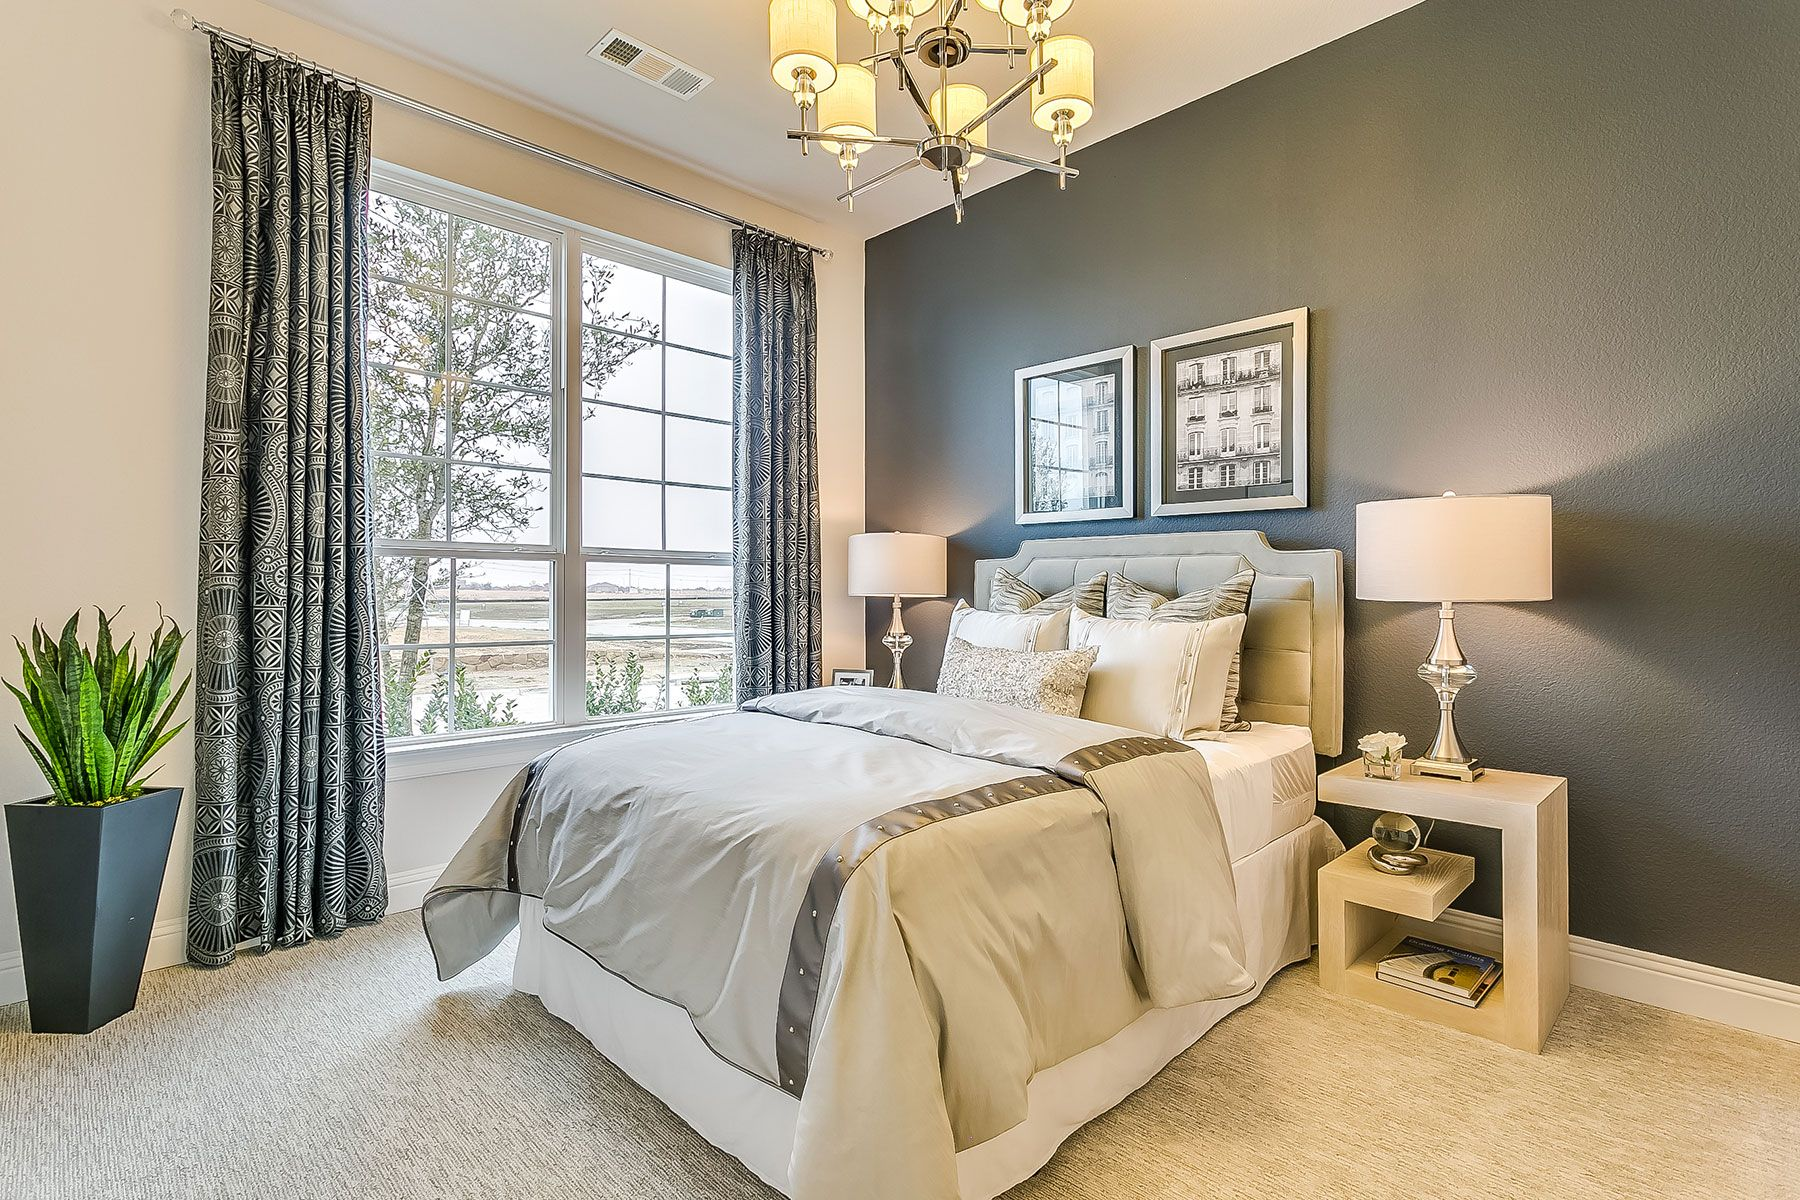 Bedroom 2 (With images) | Home, Home decor, Bedroom